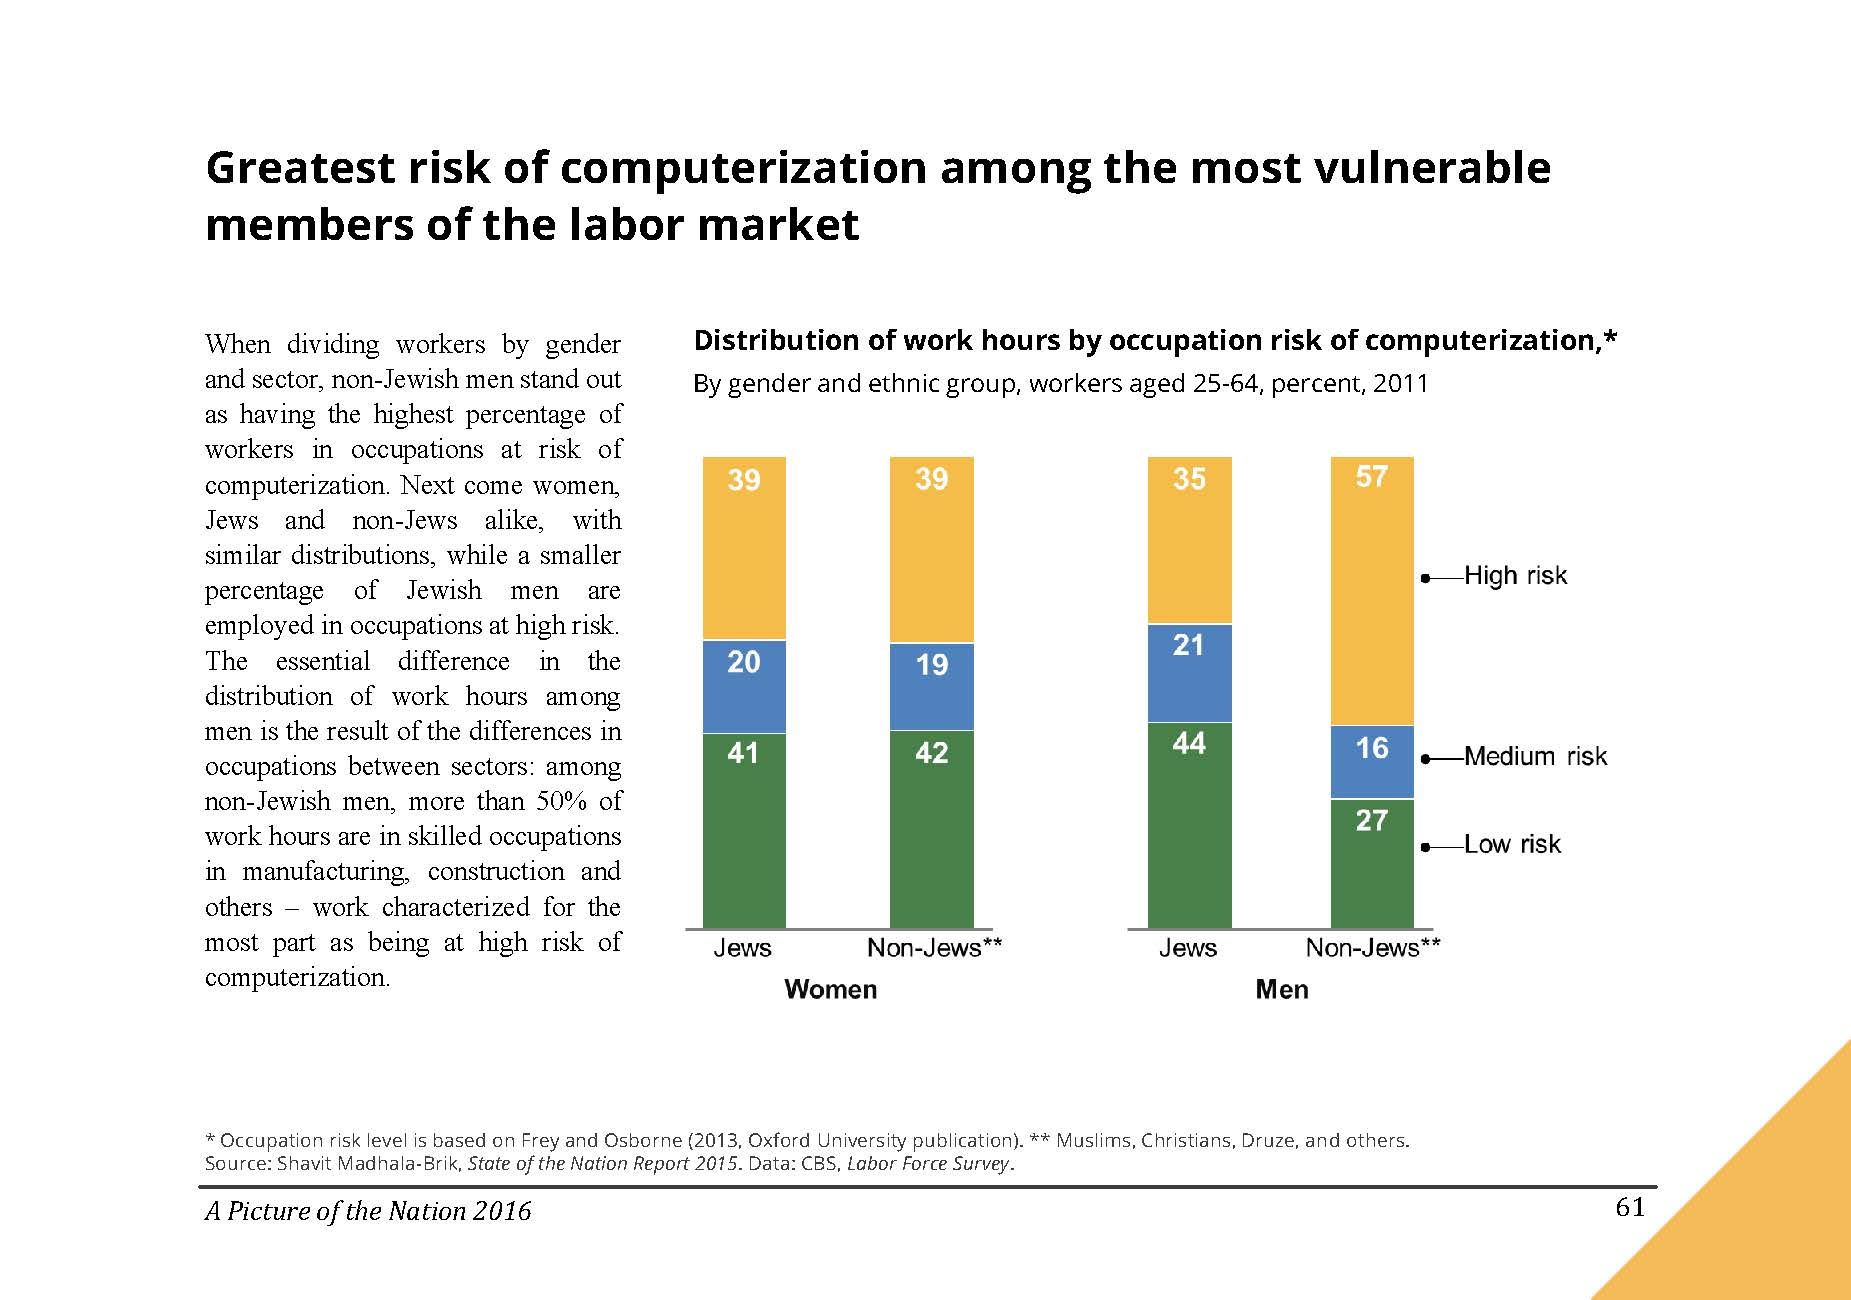 Greatest risk of computerization among the most vulnerable members of the labor market